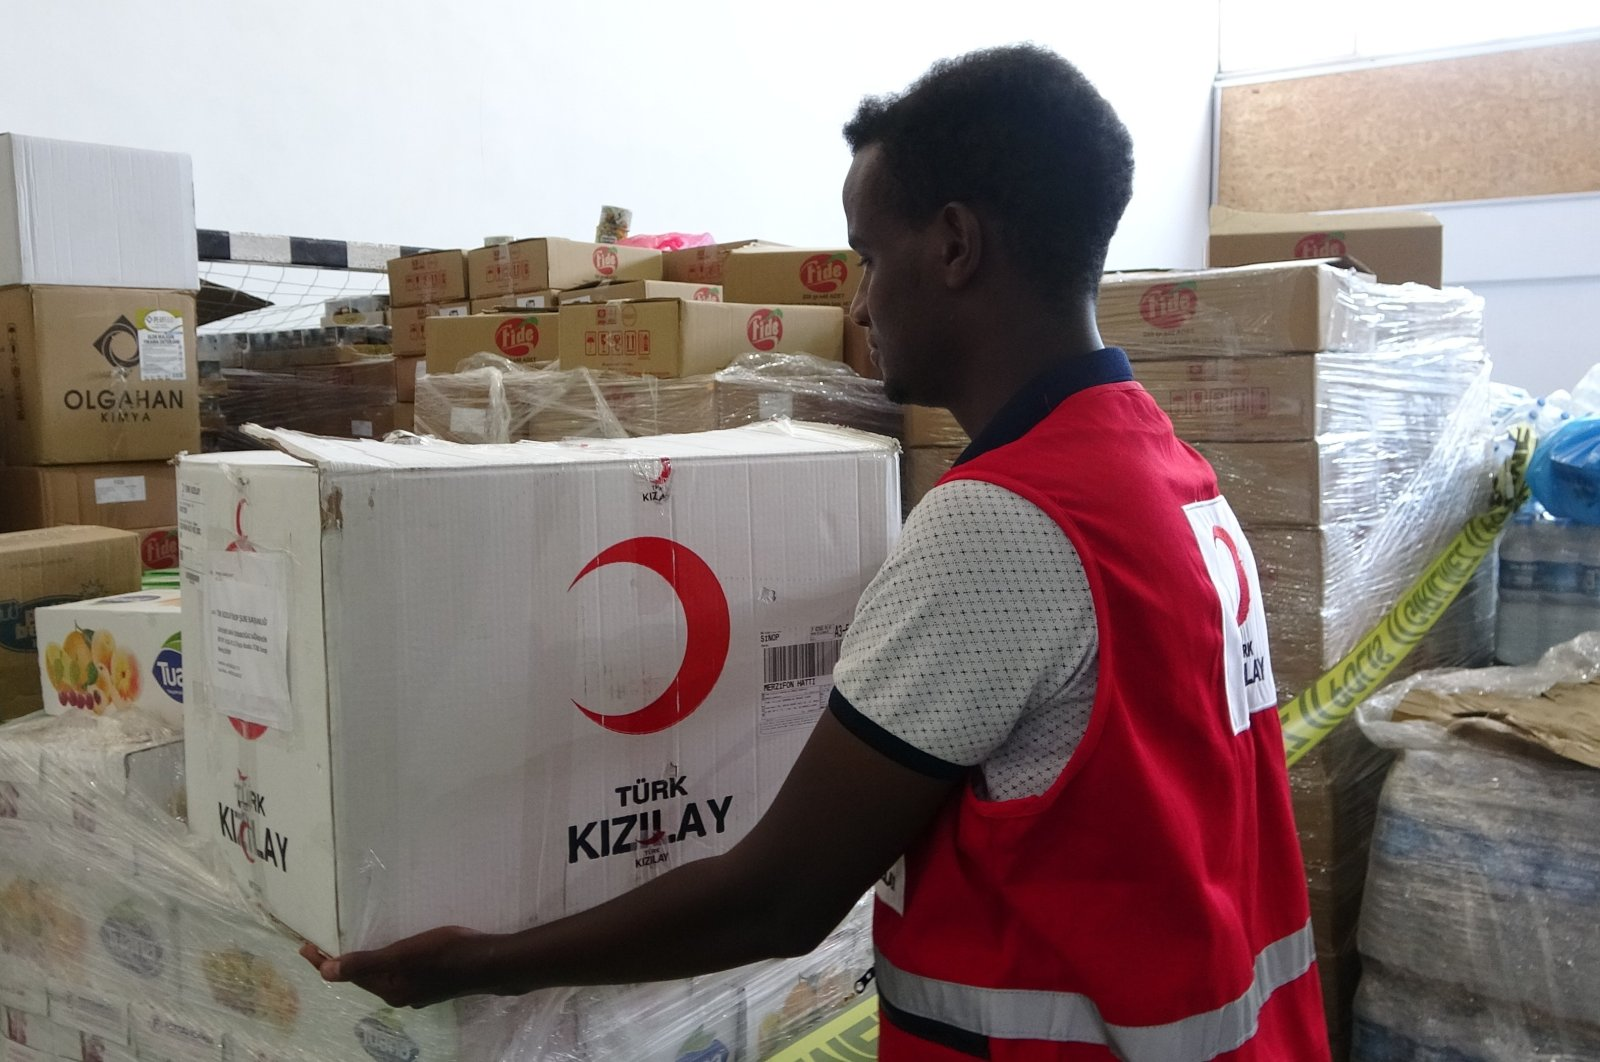 A Somalian Red Crescent worker handles an aid package sent by Turkey, Aug. 24, 2021. (IHA Photo)